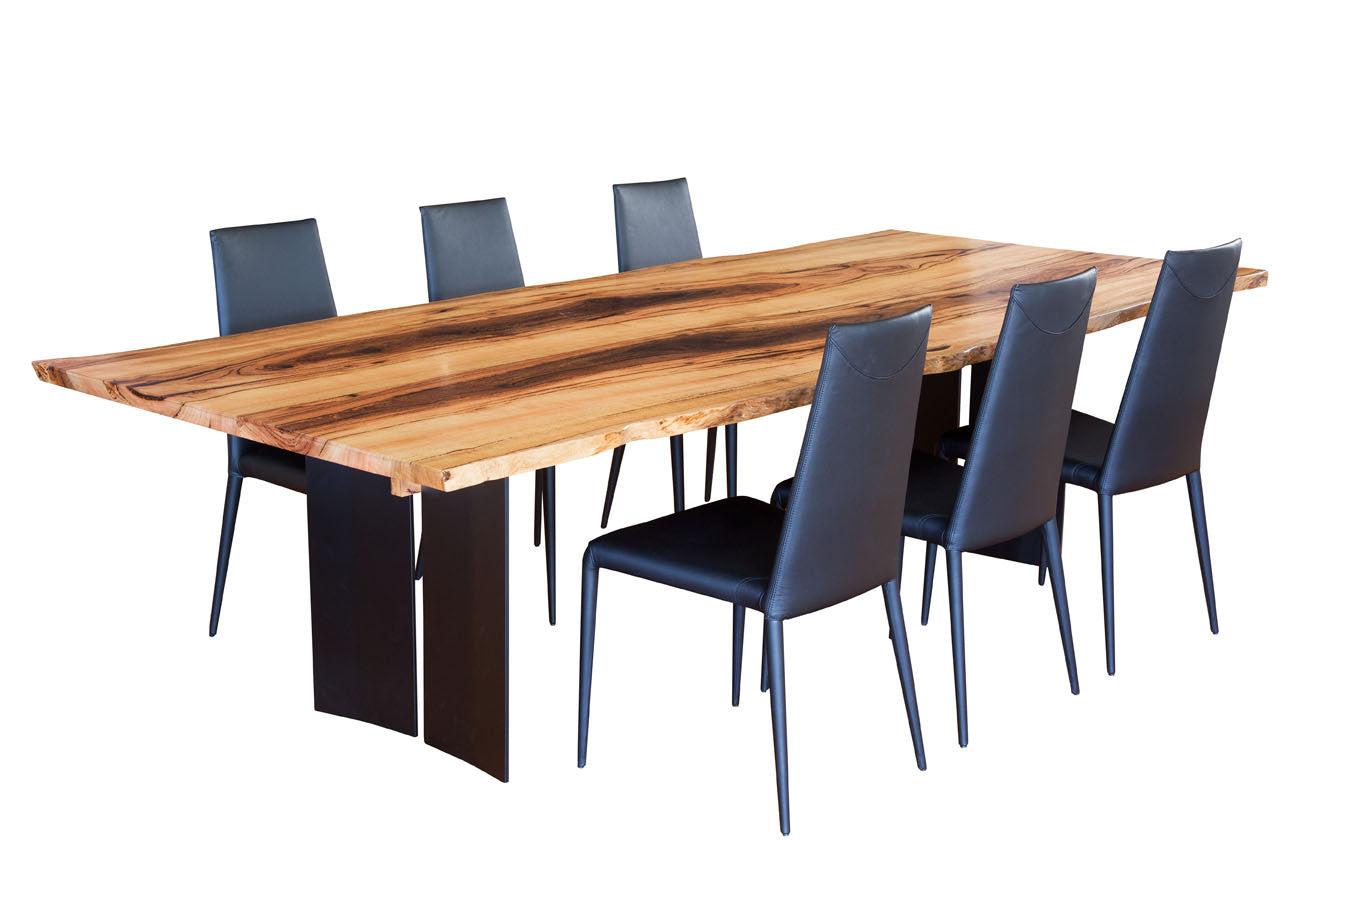 Natural Edge Timber Dining Table: Blackwood Natural Edge Marri Dining Table